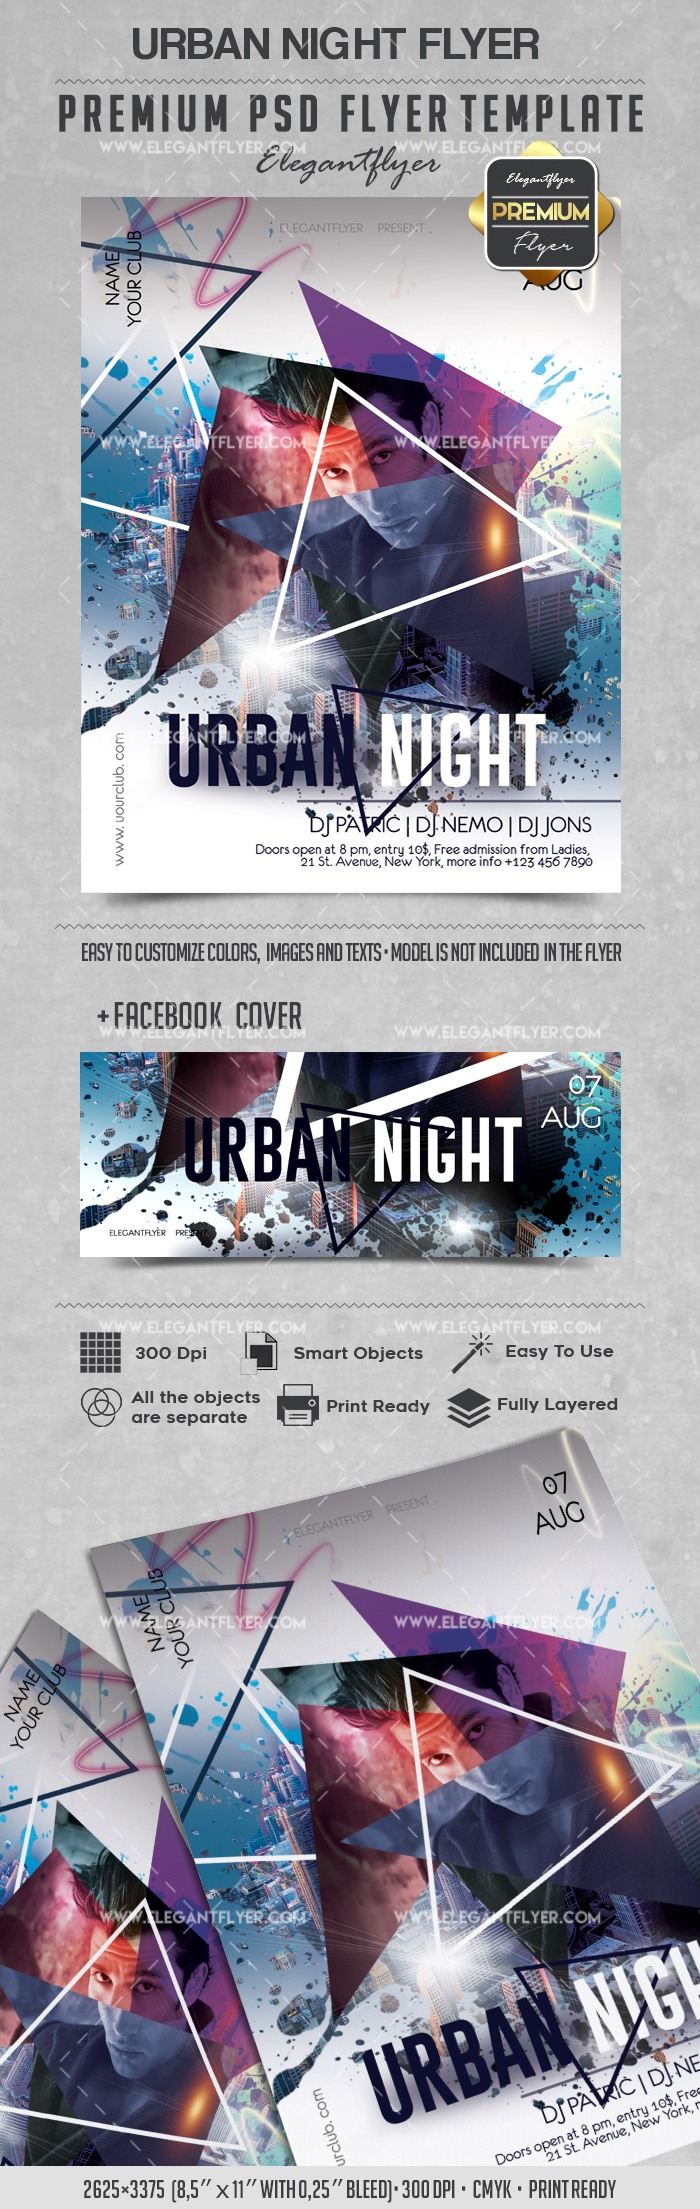 Poster for Urban Night Party